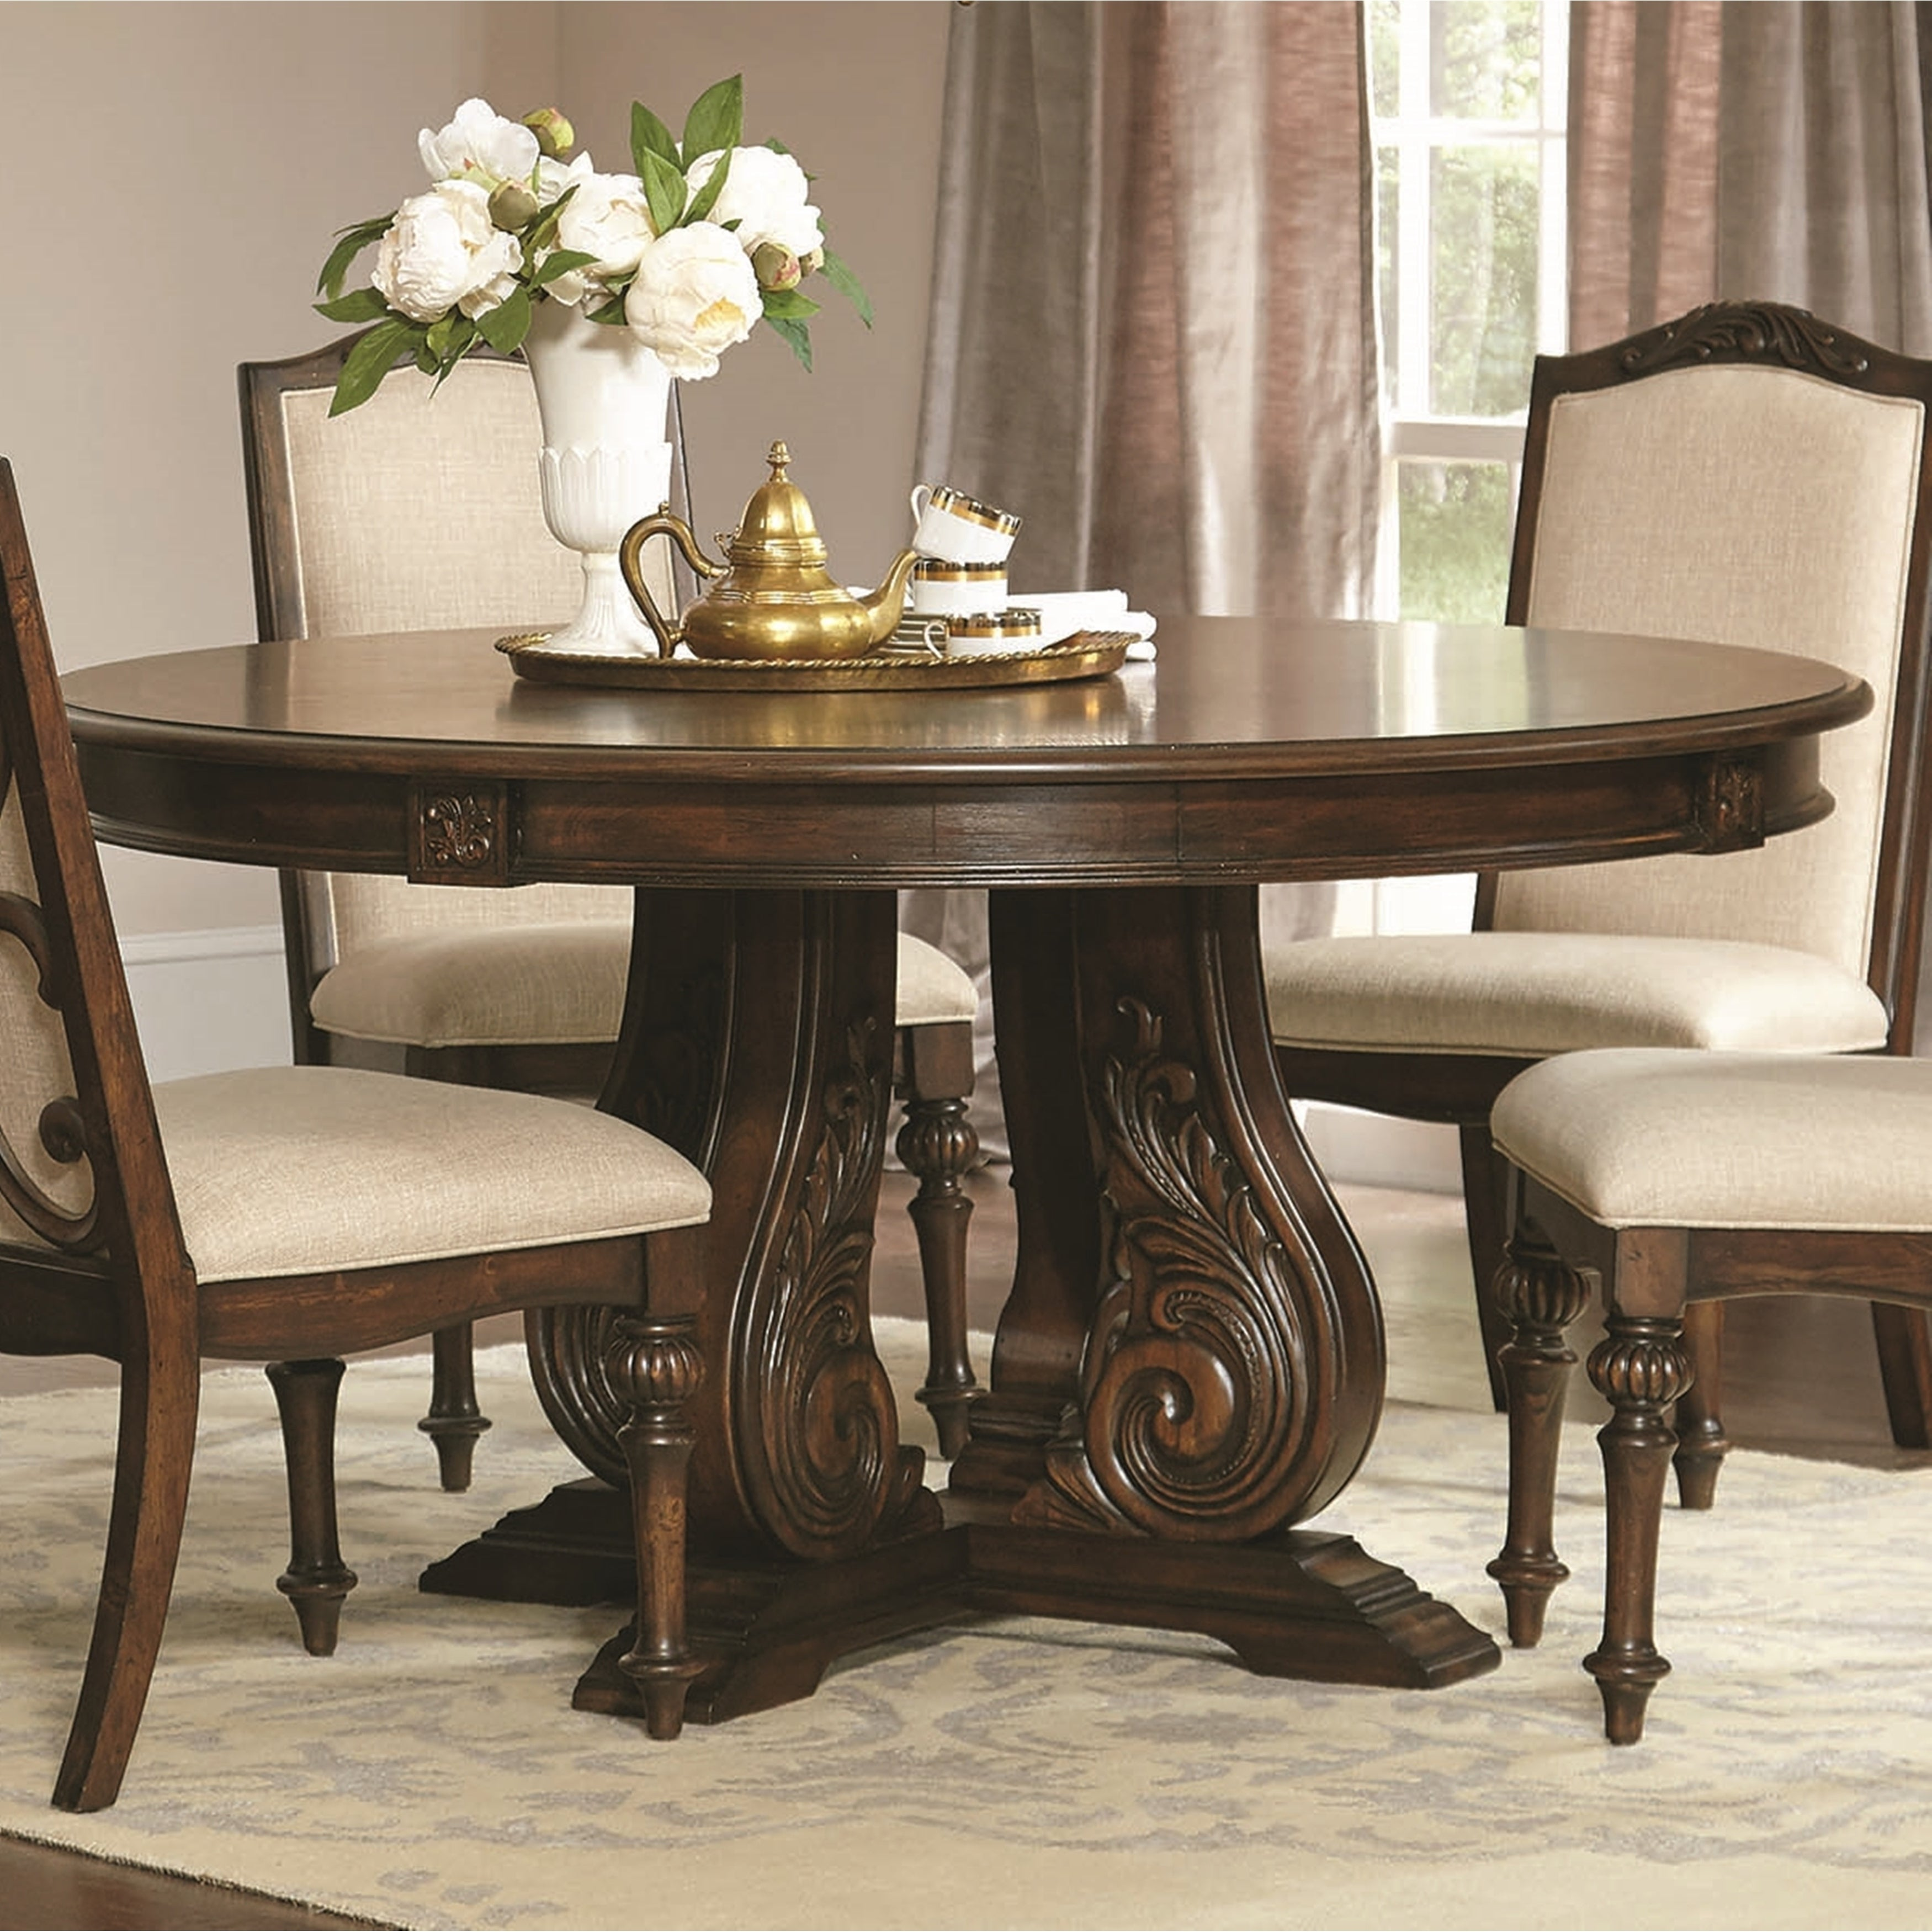 La Bauhinia French Antique Carved Wood Design Round Dining Table Free Shipping Today 24098485